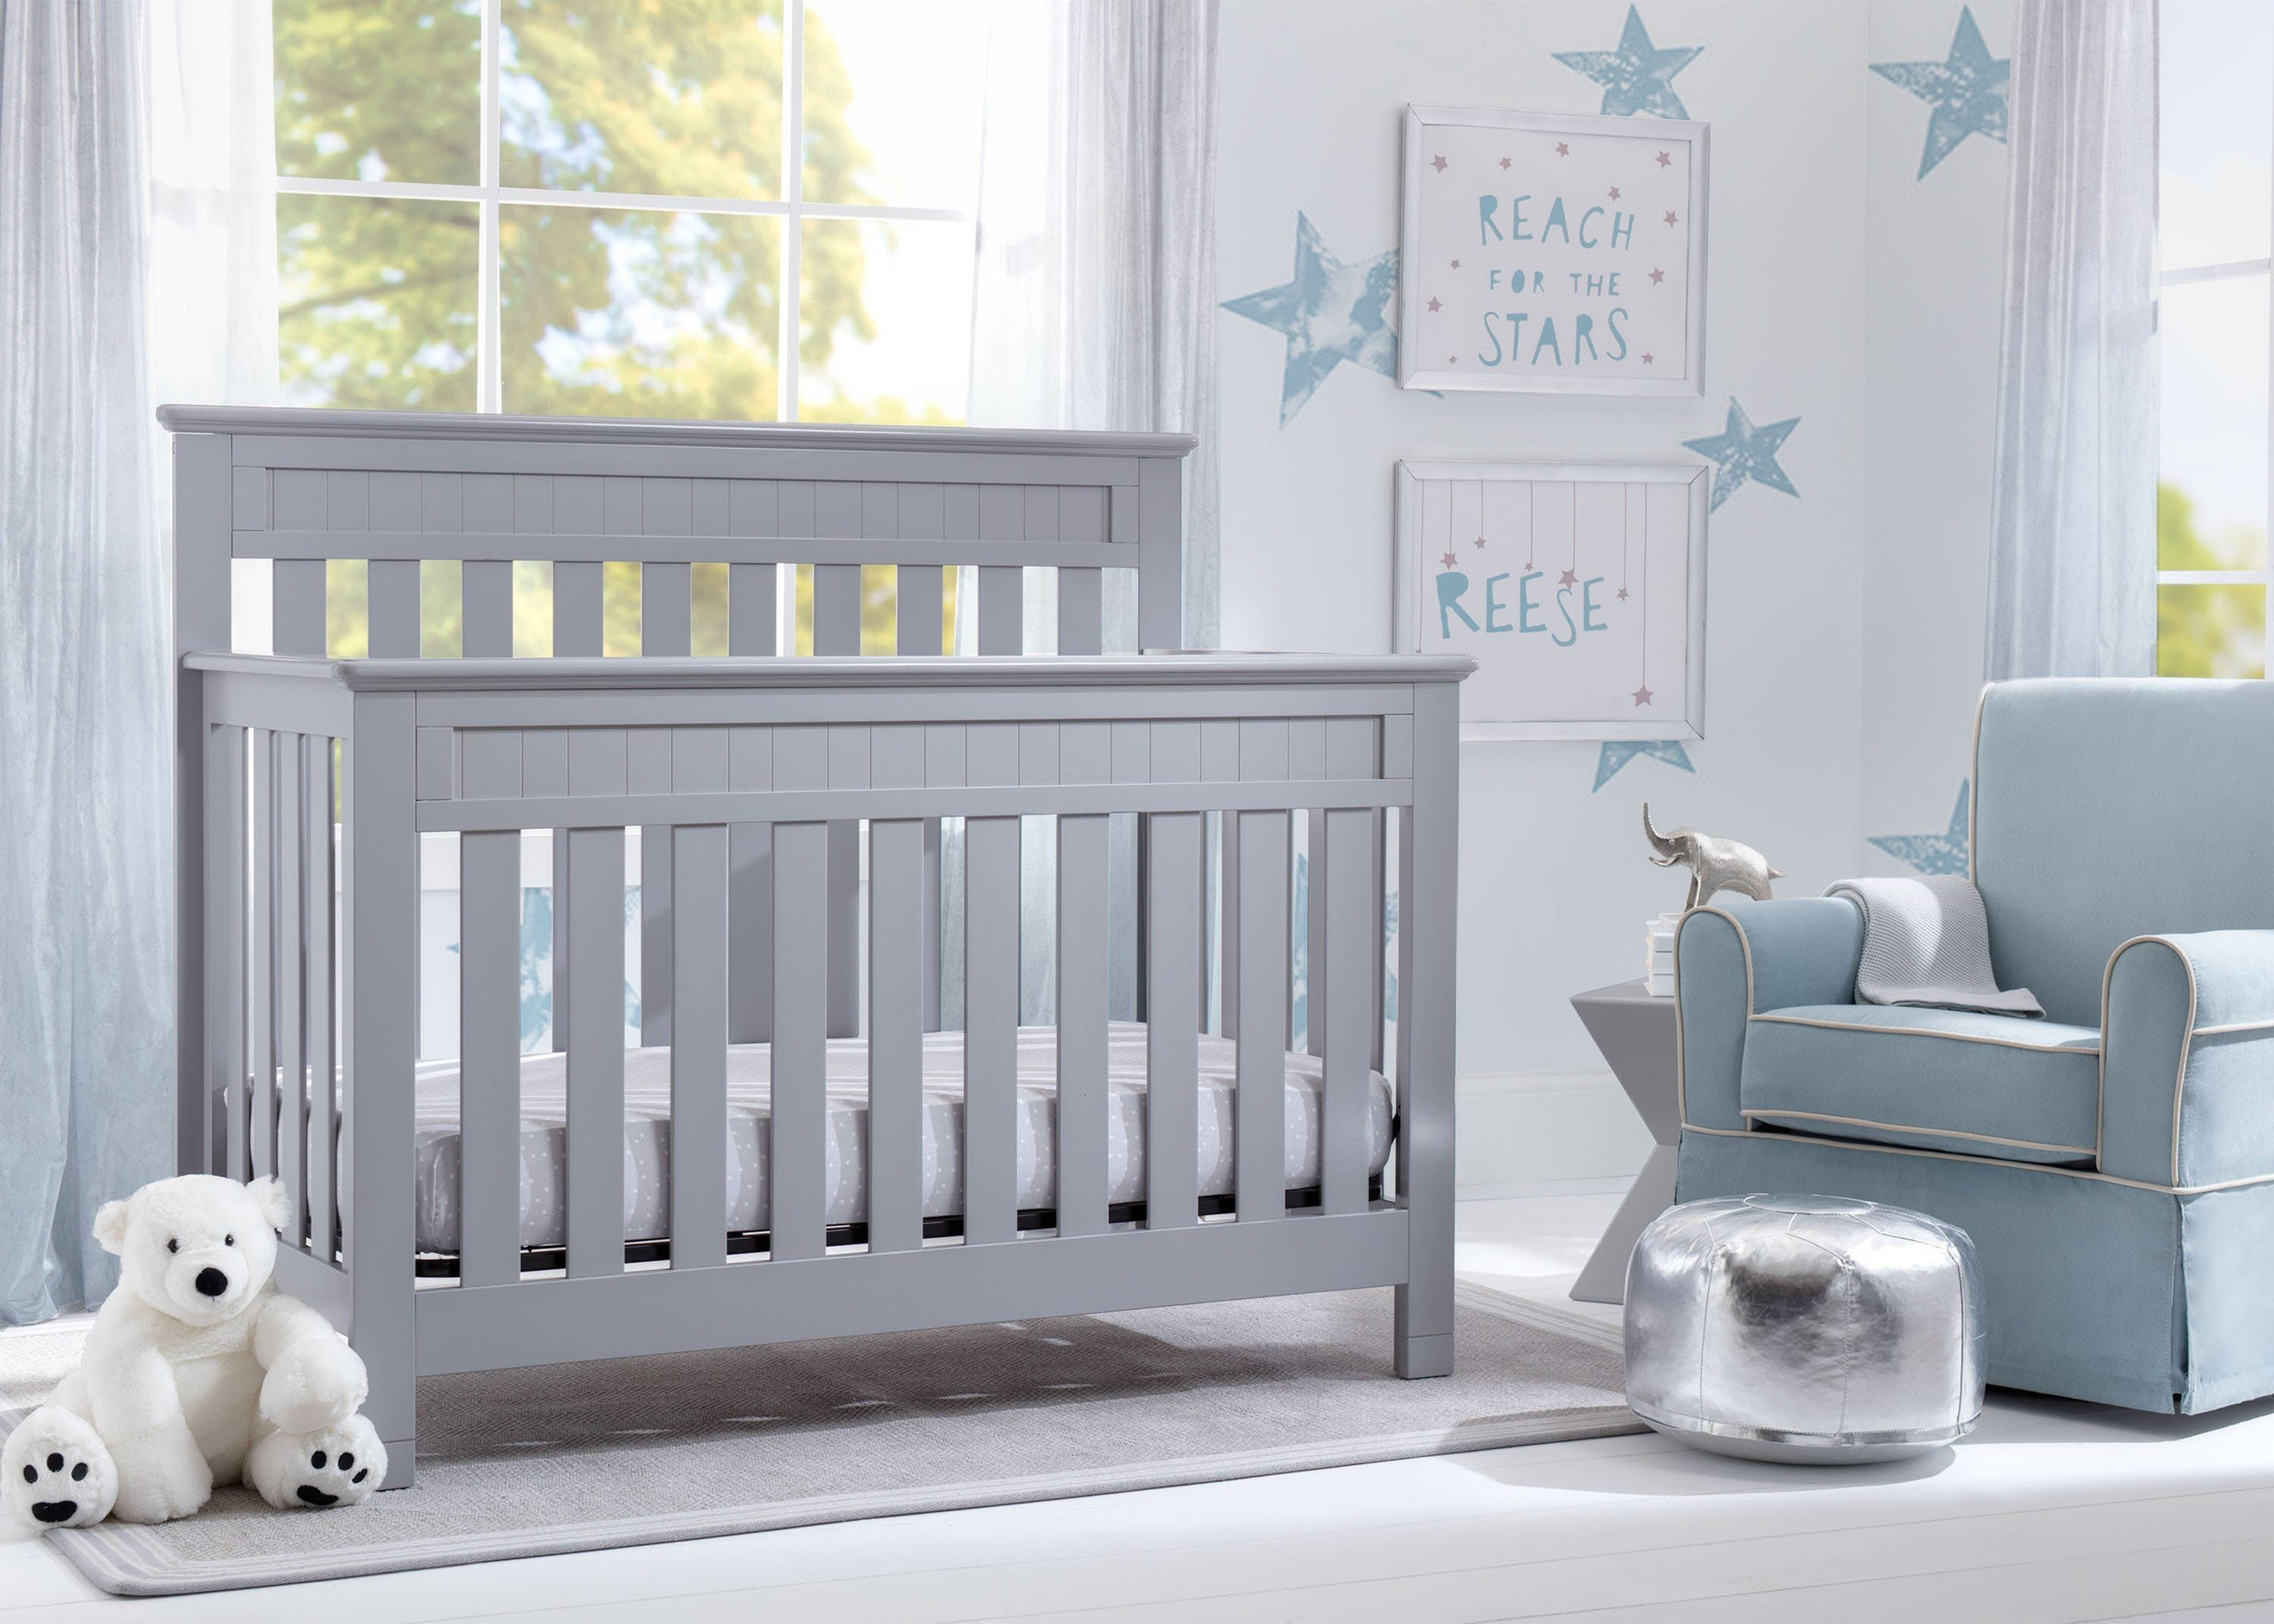 Delta Children Grey (026) Chalet 4-in-1 Crib, room view, d1d